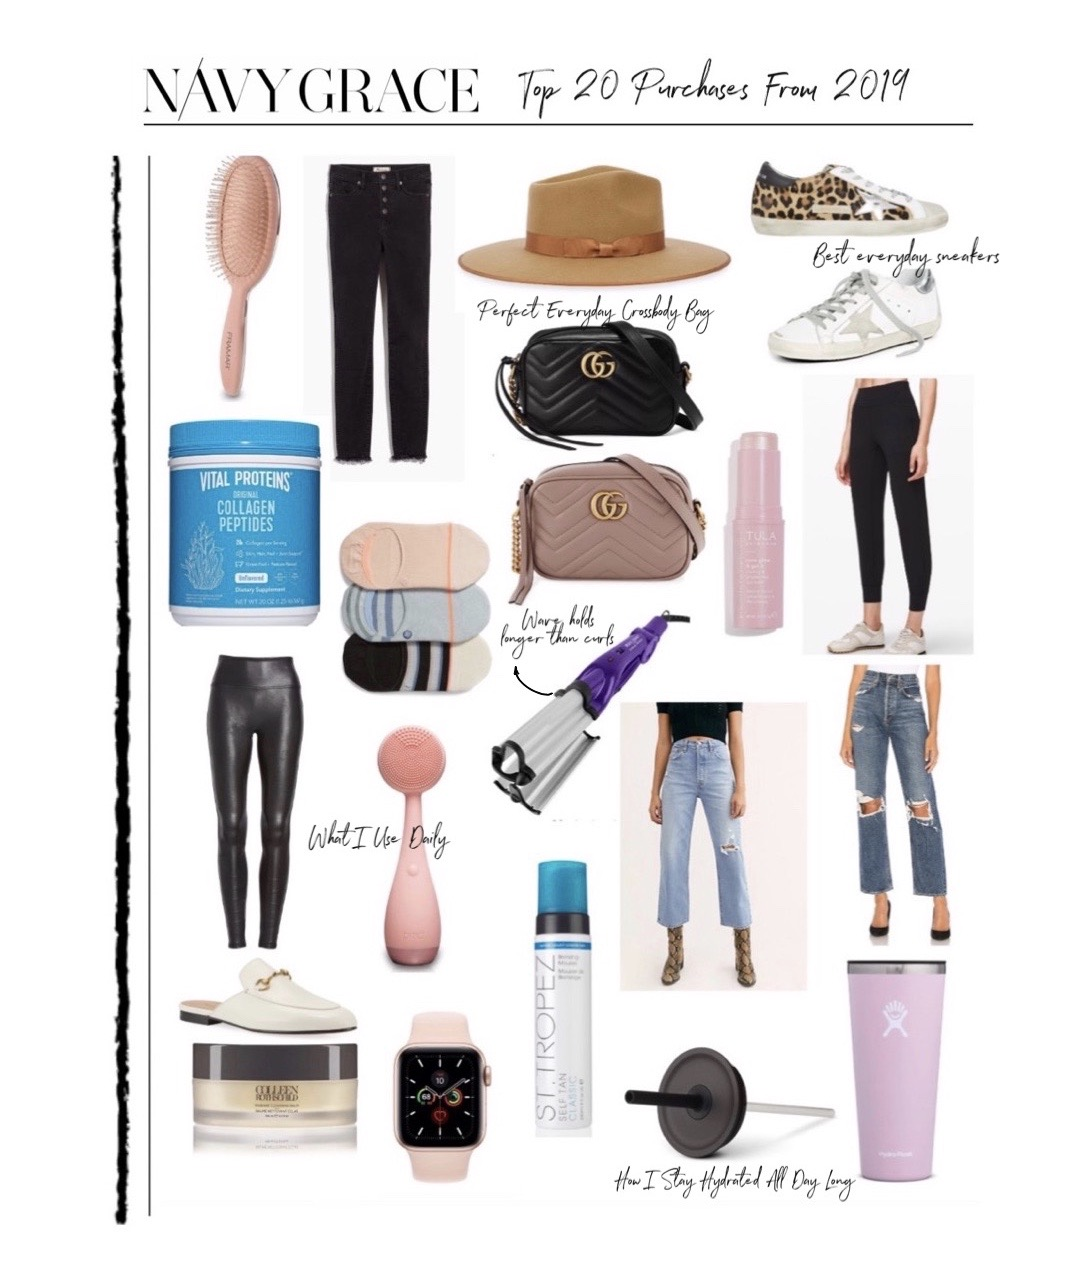 best 2019 purchases featured by top San Diego life and style blog, Navy Grace. | 2019 Favorite Products by popular San Diego life and style blog, Navy Grace: collage image of a hair brush, Gigi Pip Hat, Golden Goose Sneakers, Gucci GG Marmont mini bag, jeans, Spanx faux leather leggins, no-show socks, Vital Proteins, St. Tropez self tanner, Hydra flask, apple watch, and white slides.